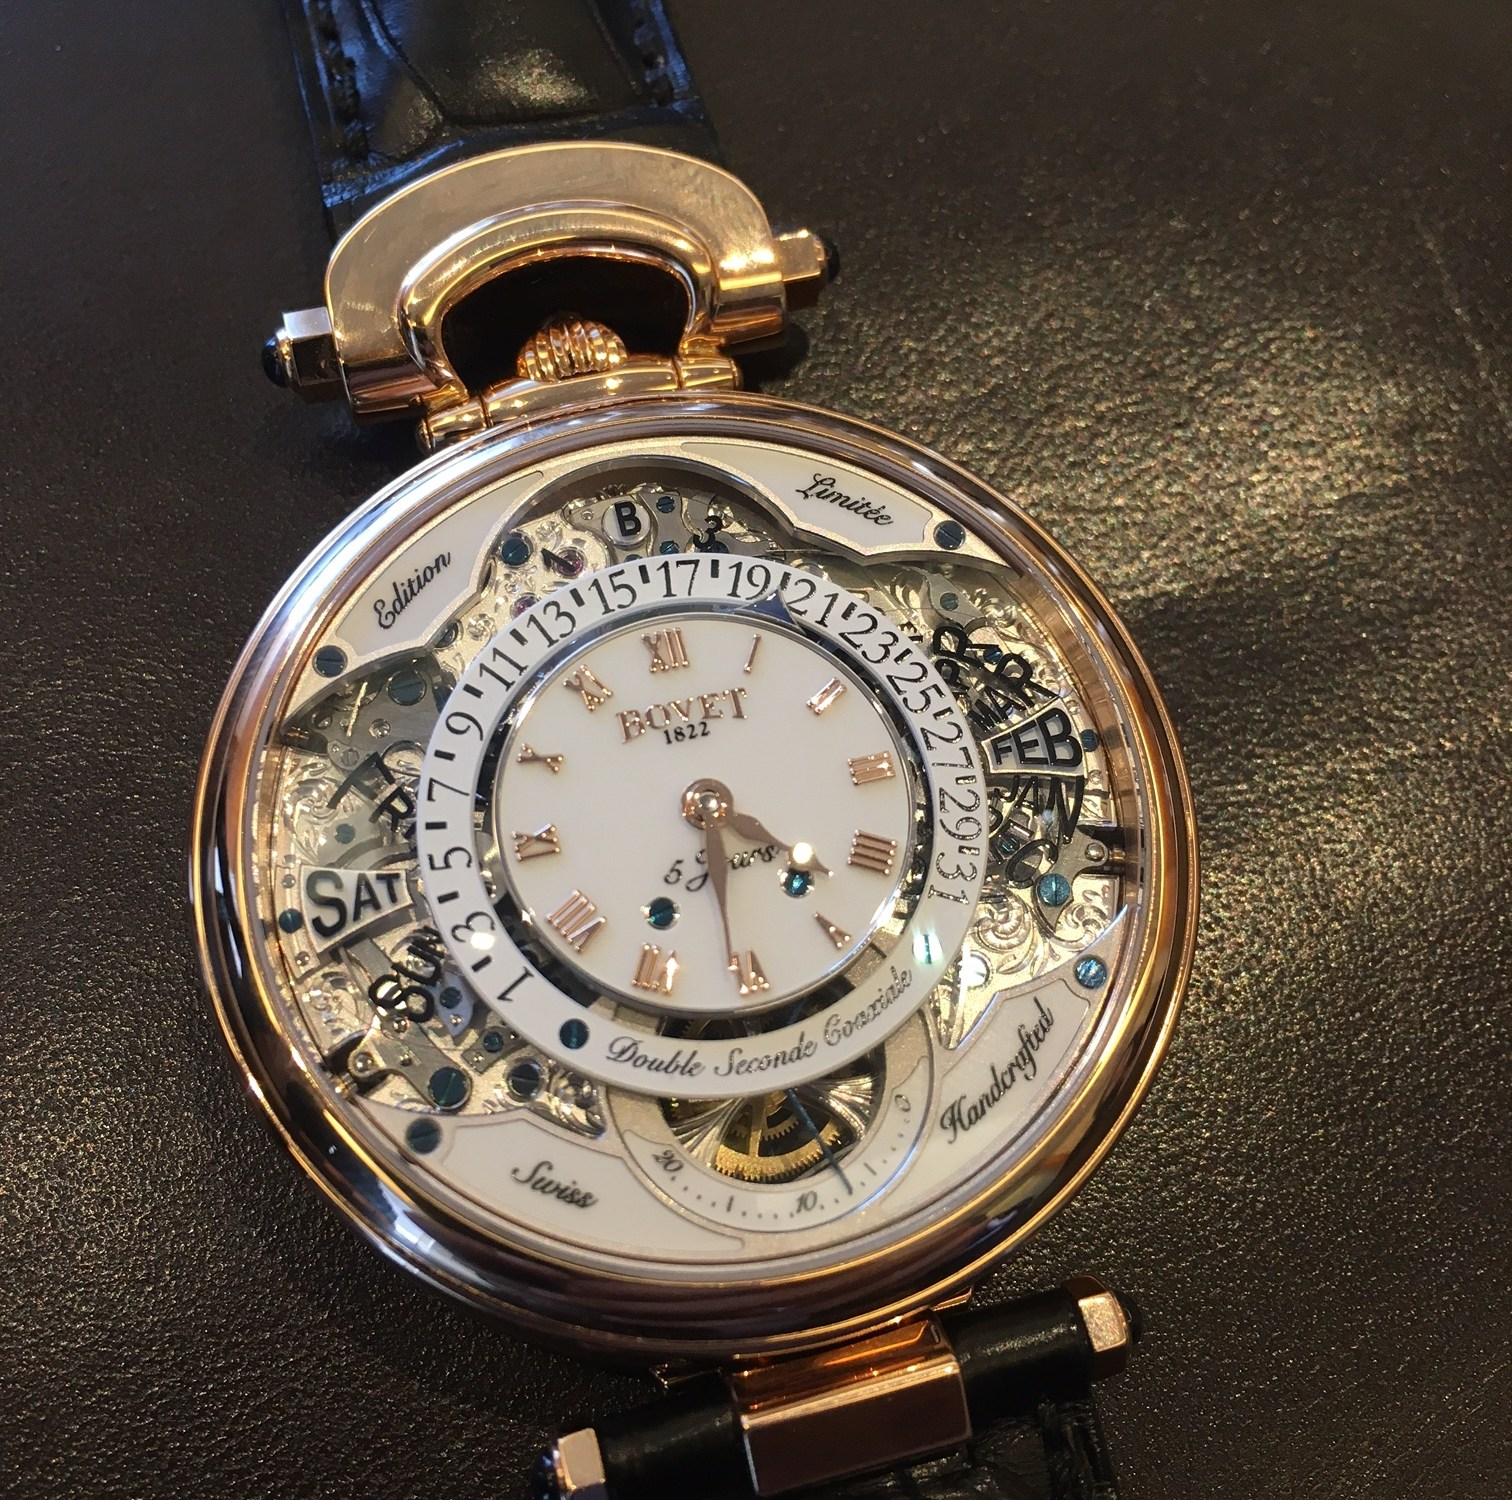 pics live news tourbillon watch watches bovet ottantasei reviews gk category watchgk flying